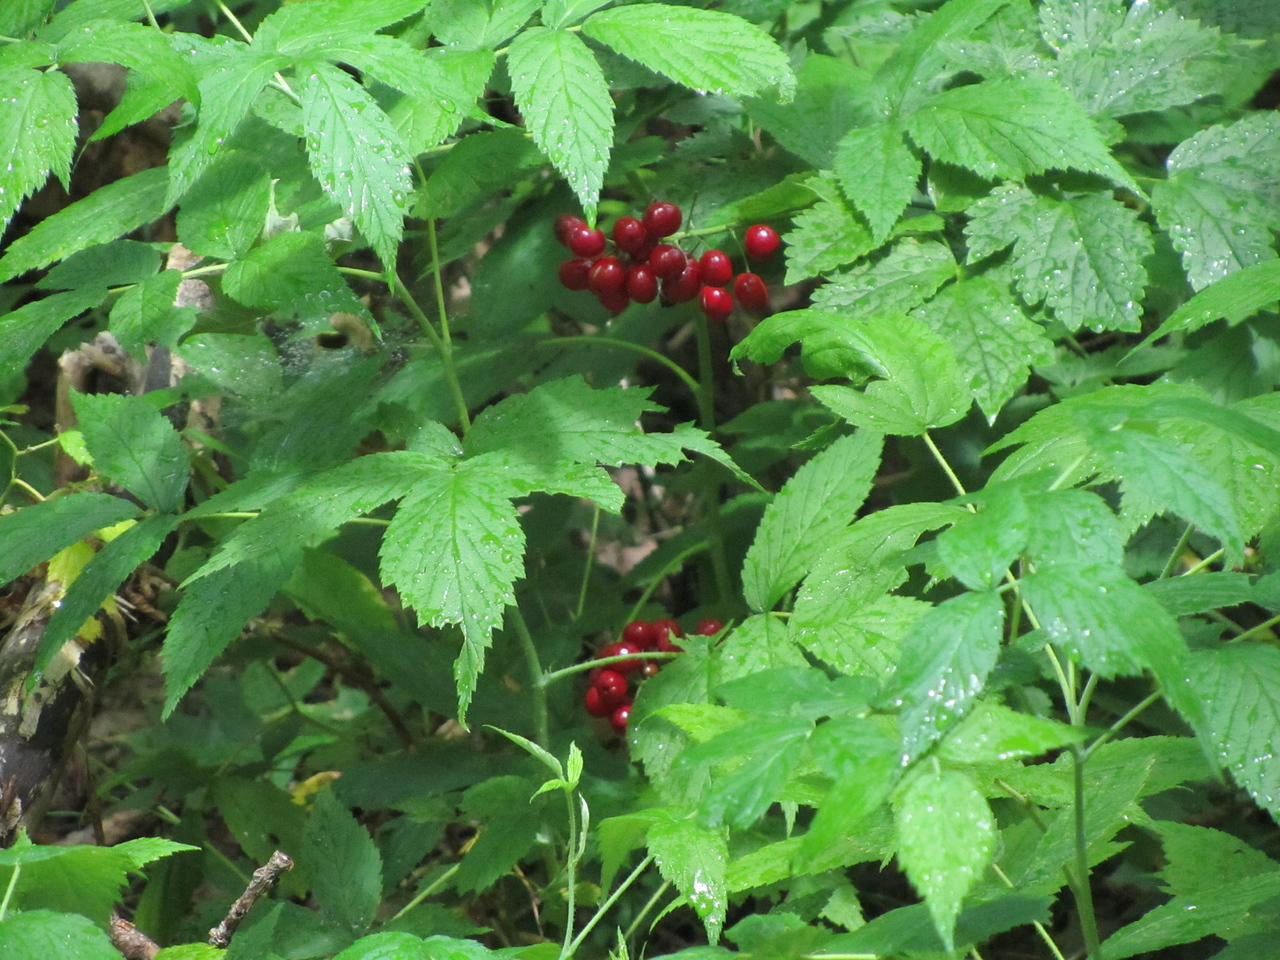 Some nice bright berries. Not sure if they are edible but they look tasty.